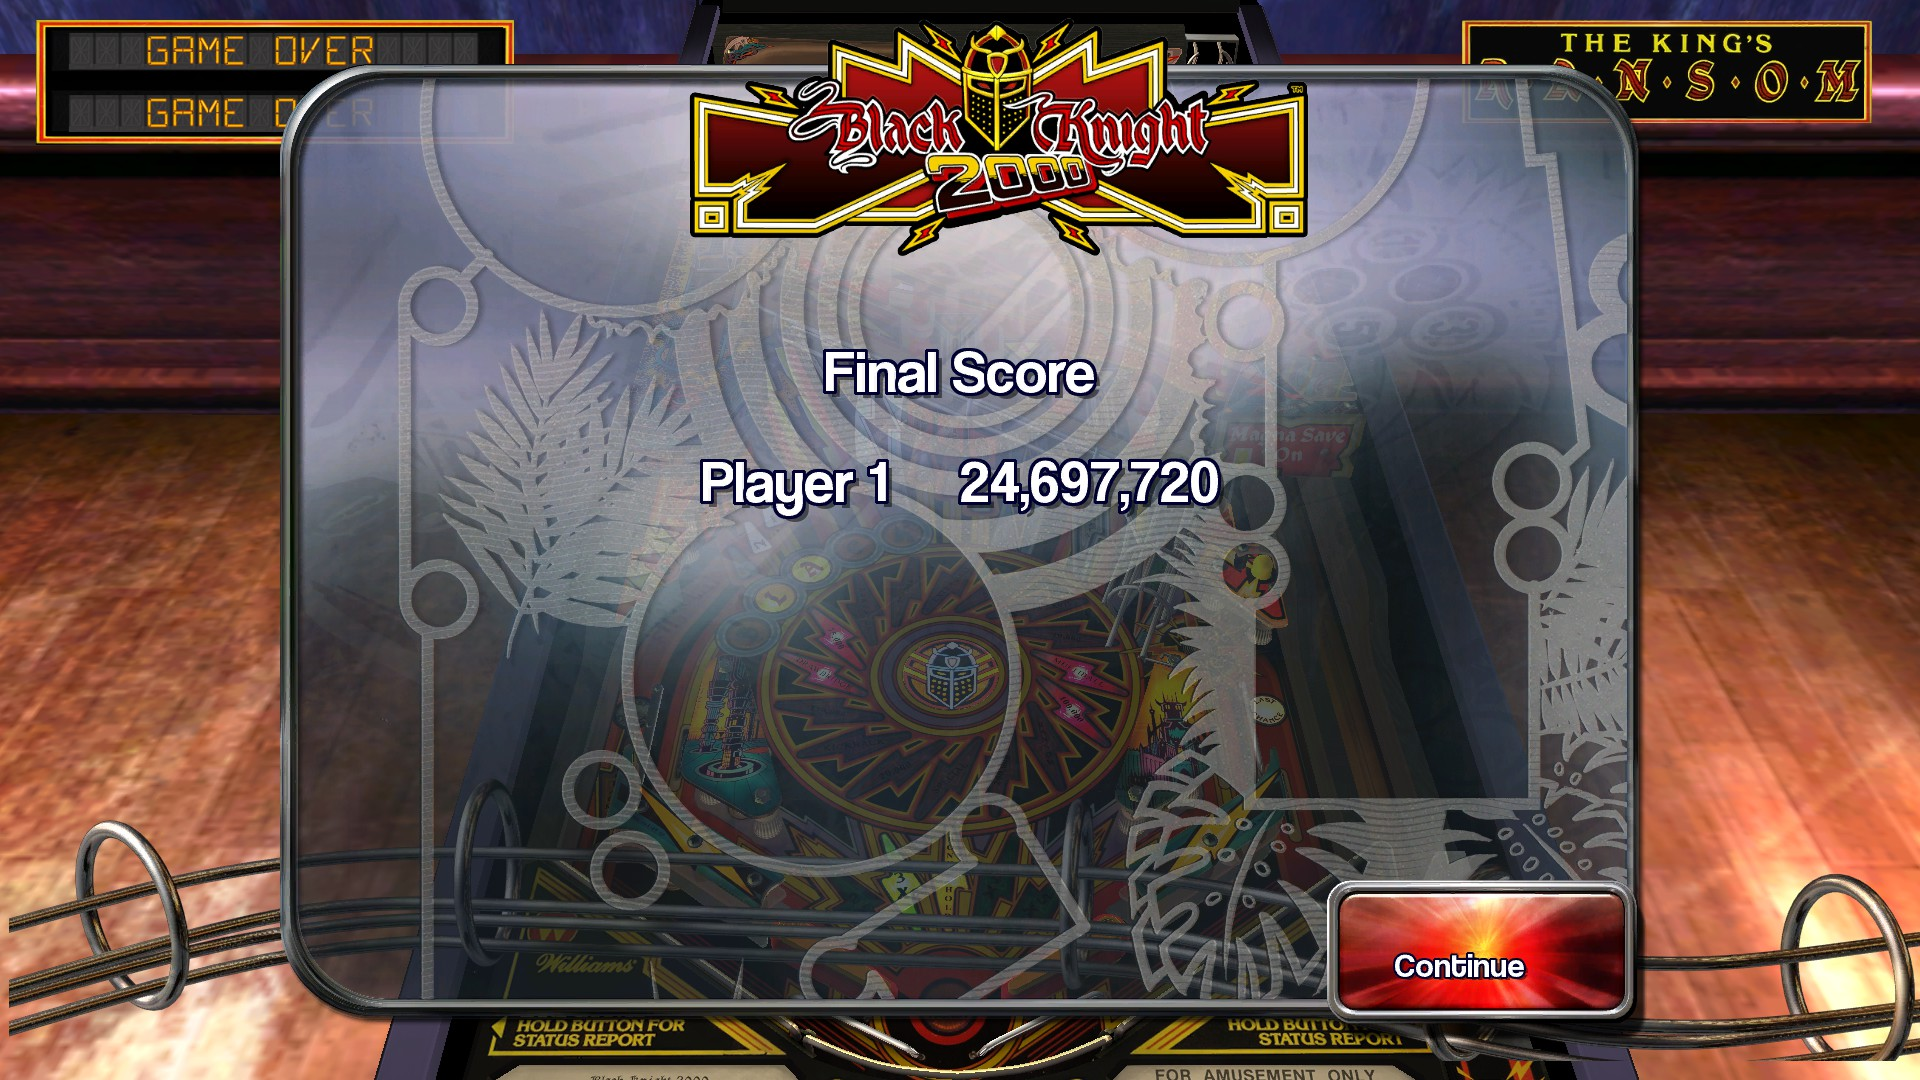 TheTrickster: Pinball Arcade: Black Knight 2000 (PC) 24,697,720 points on 2016-03-04 16:04:46